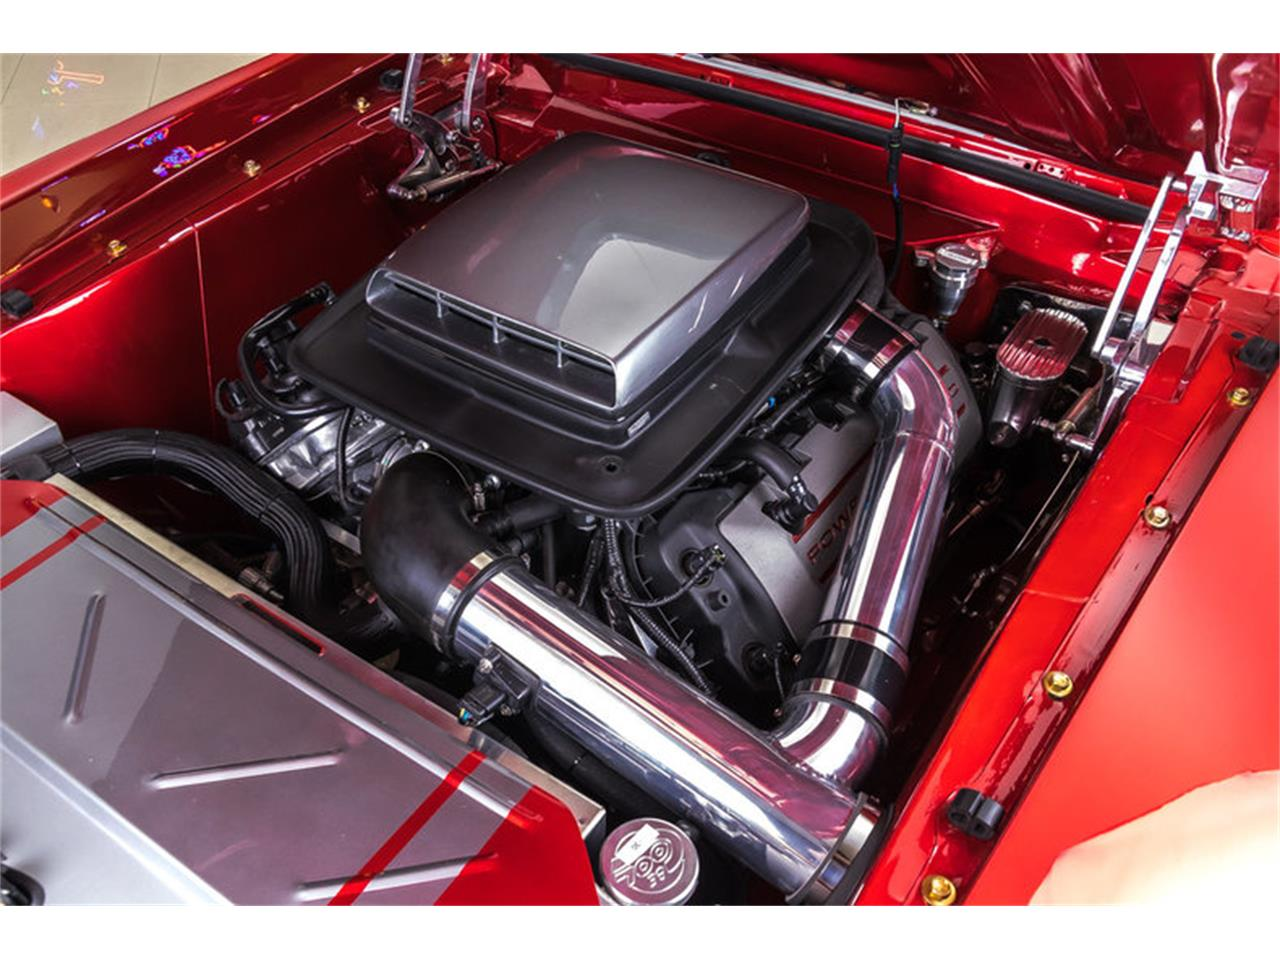 Large Picture of 1969 Ford Mustang Fastback Restomod located in Plymouth Michigan - $194,900.00 - L6C8